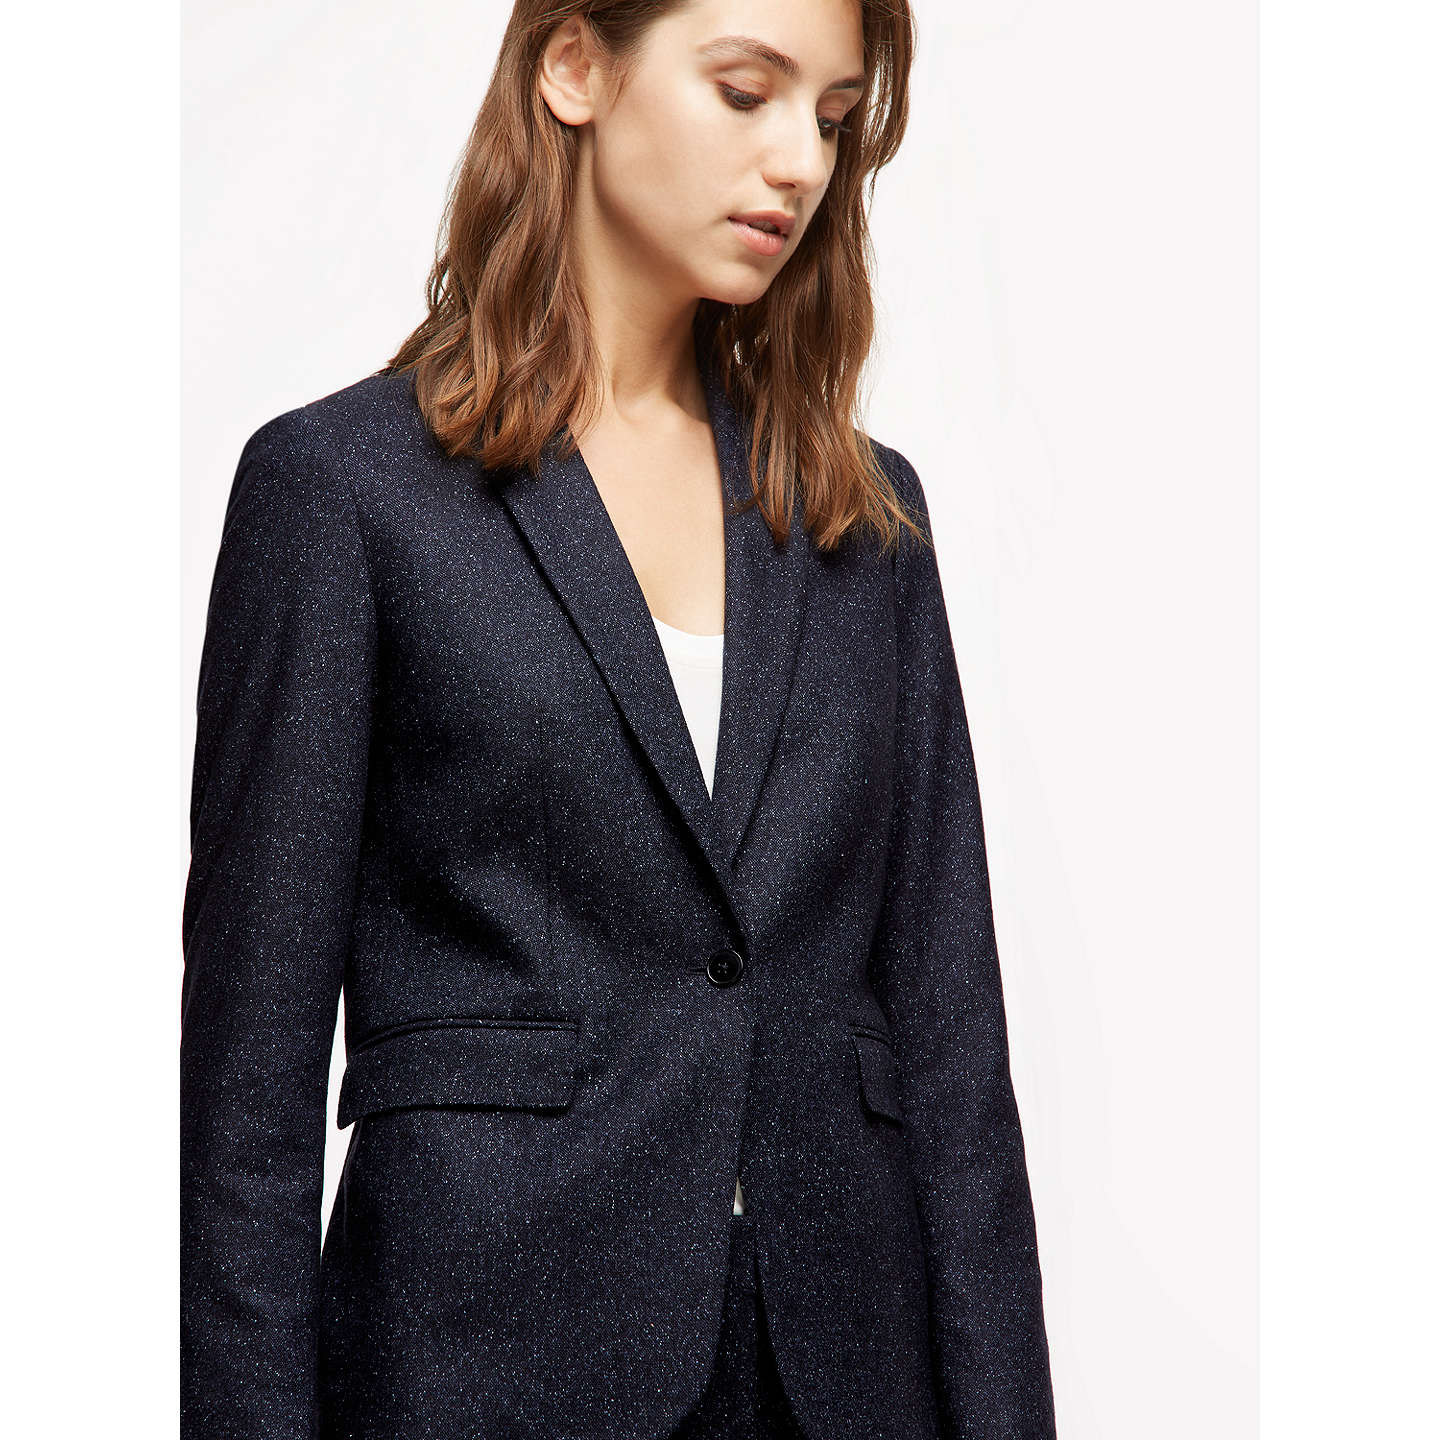 BuyJigsaw Flecked Tailoring London Jacket, Navy, 6 Online at johnlewis.com